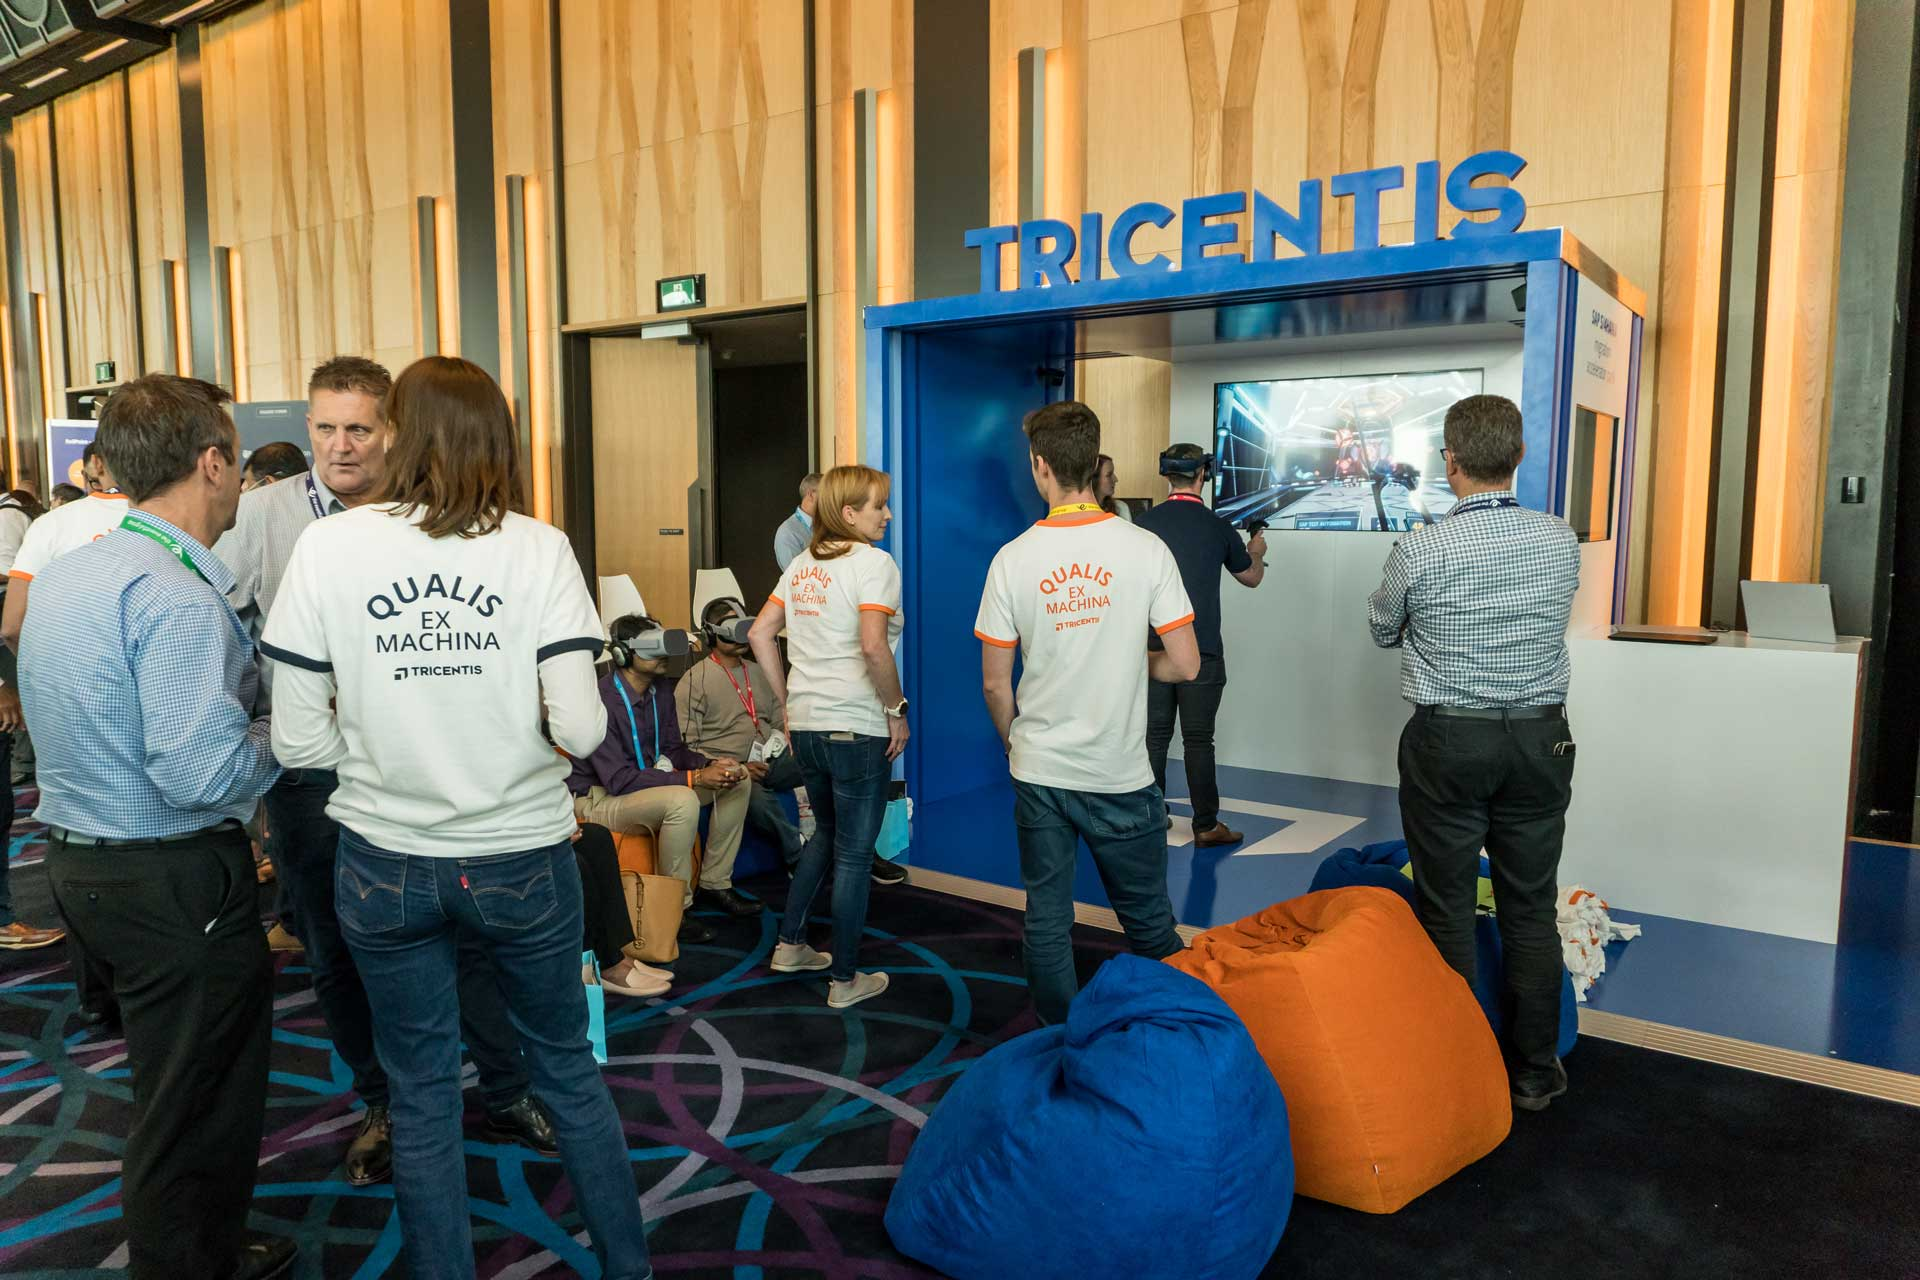 Tricentis VR and AR Project Event Activation Photo 02